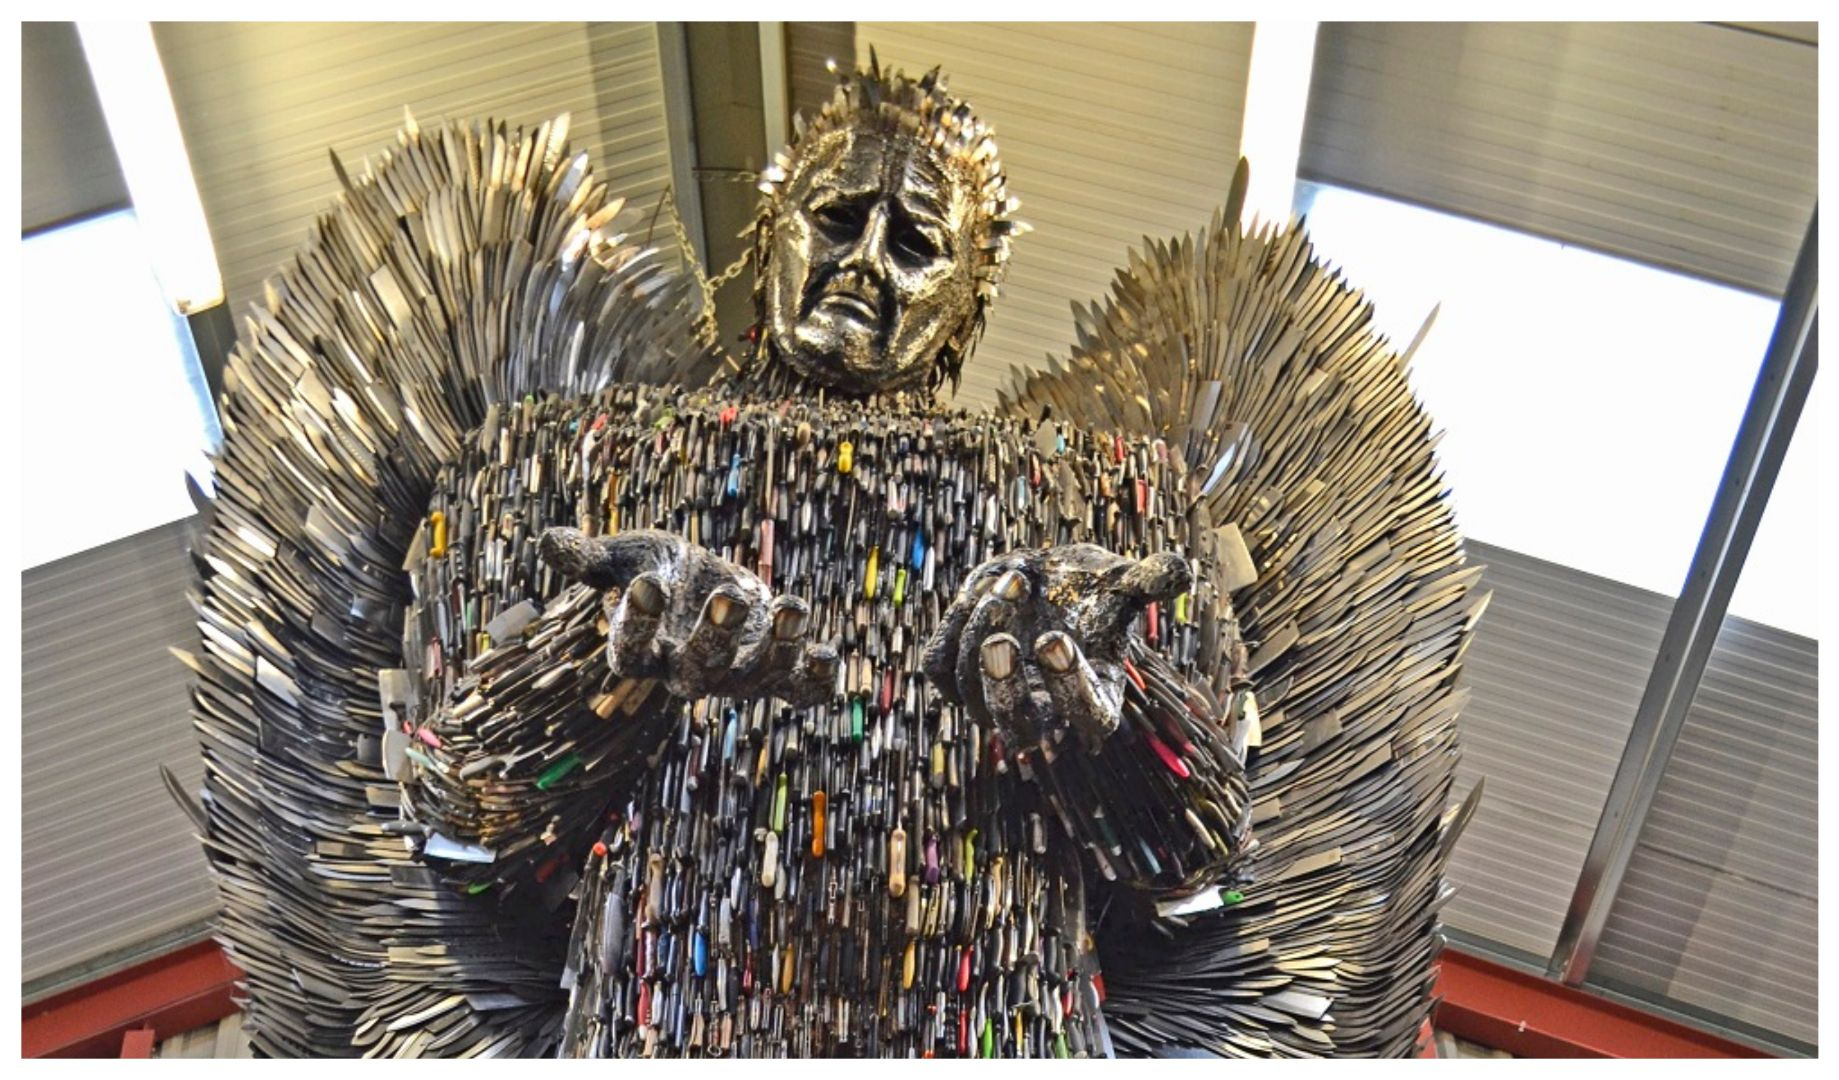 Knife angel sculpture